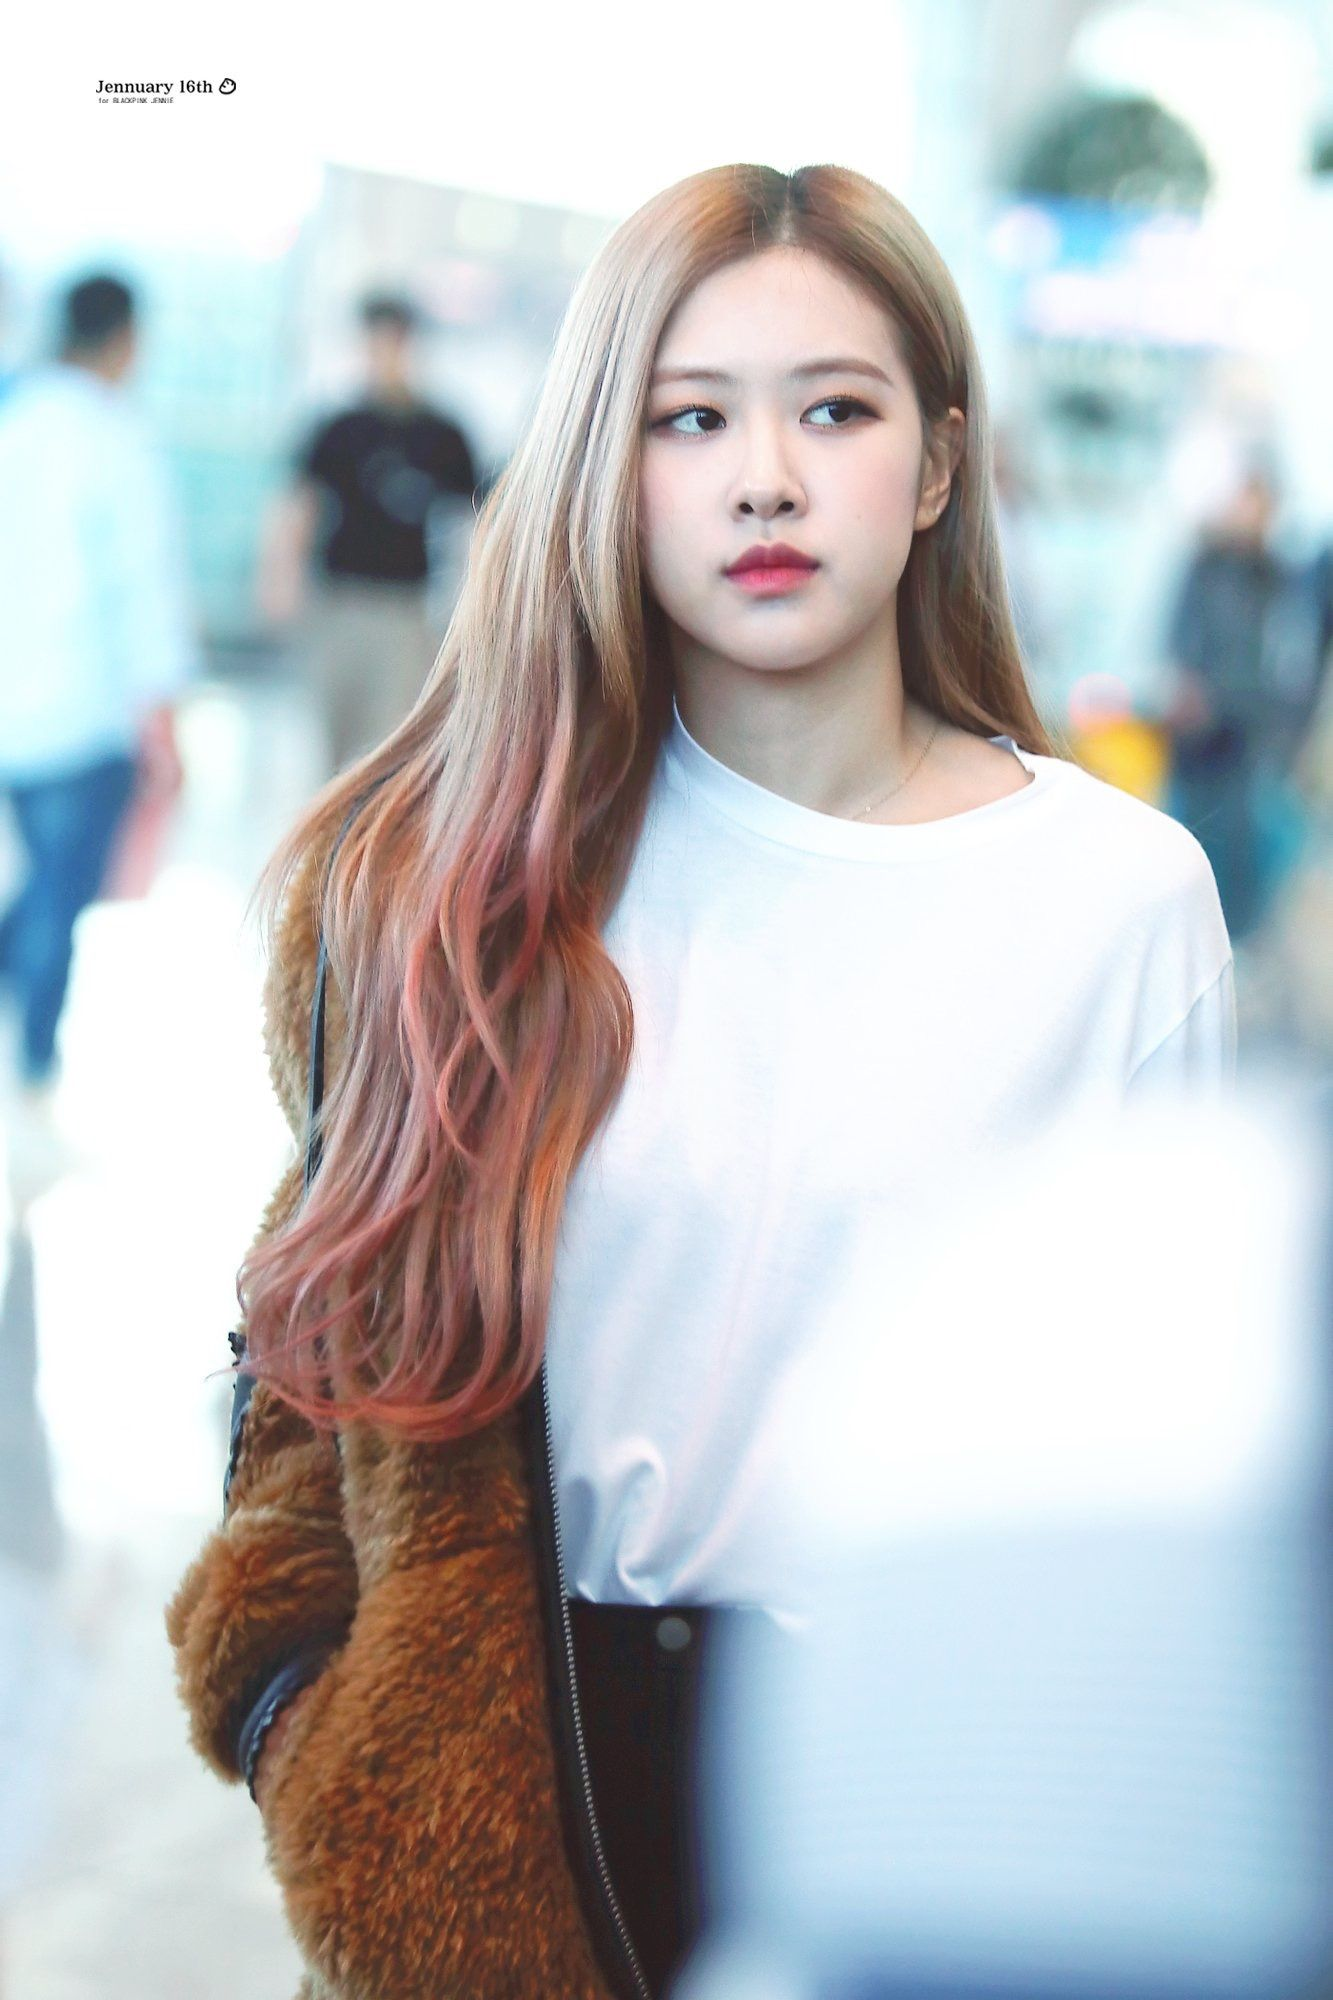 Rose Blackpink Blackpink In 2019 Pinterest Blackpink Rose